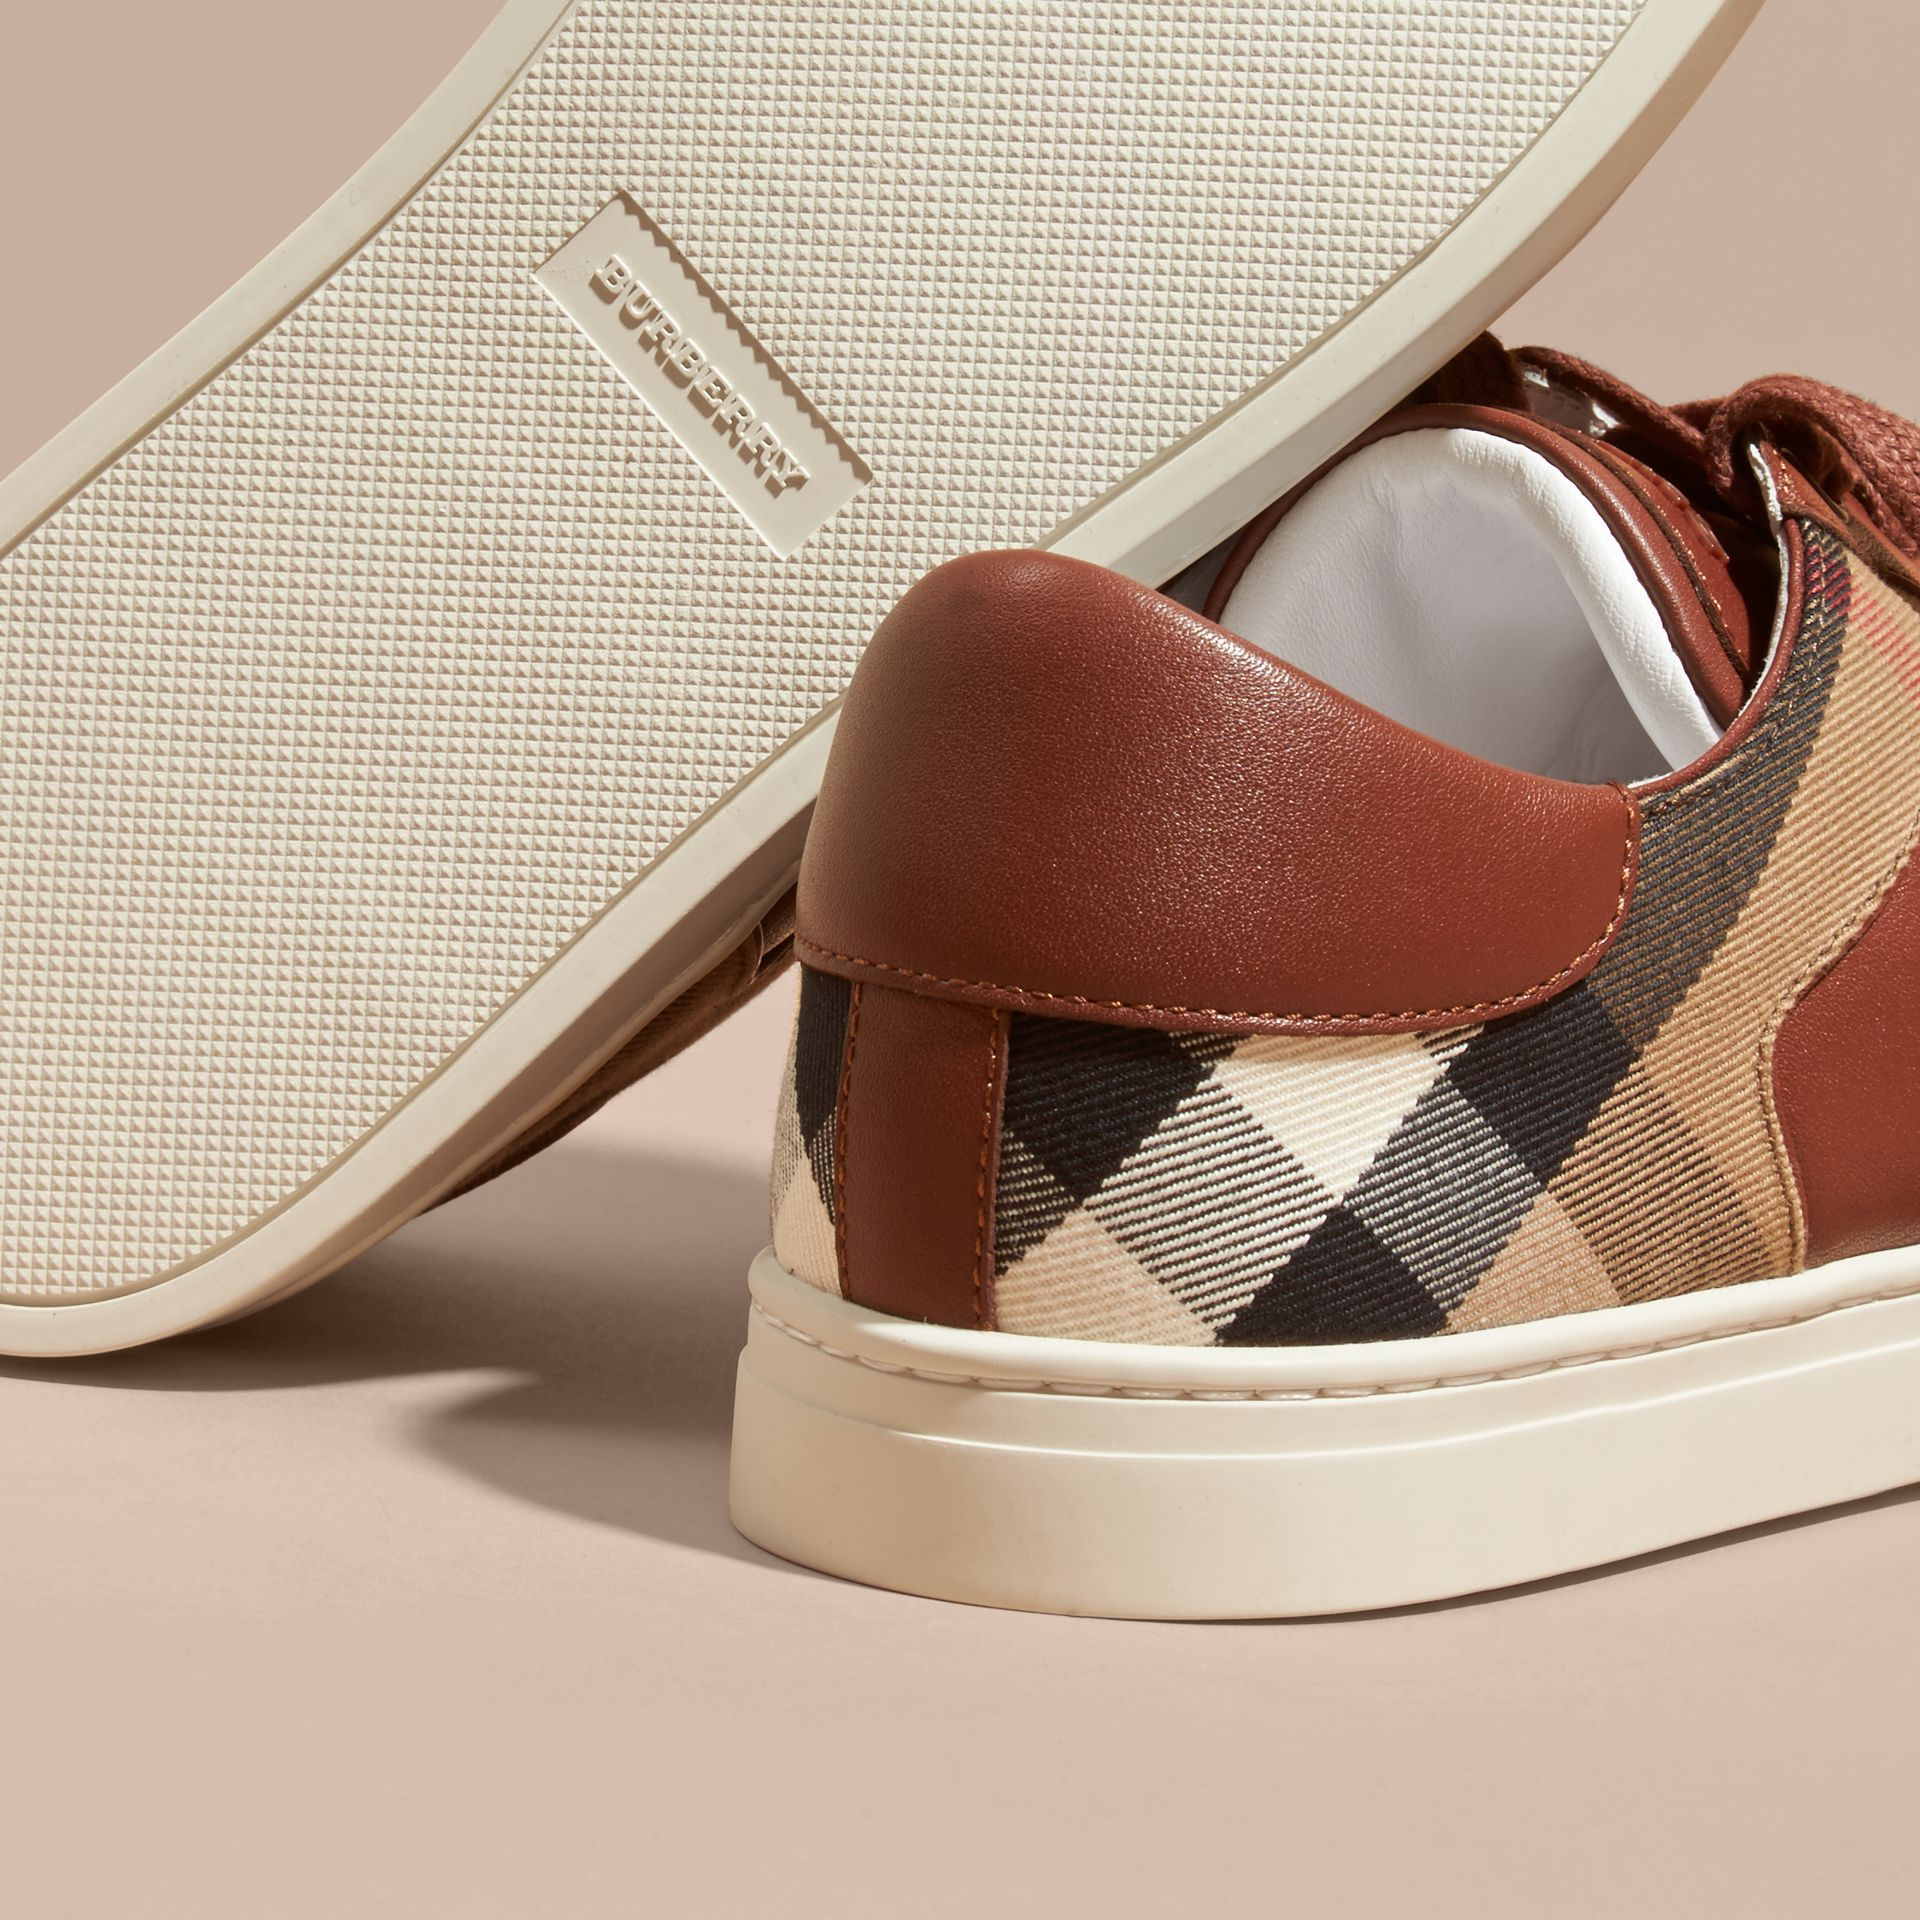 House check/bright camel Leather and House Check Trainers Check/bright Camel - gallery image 5